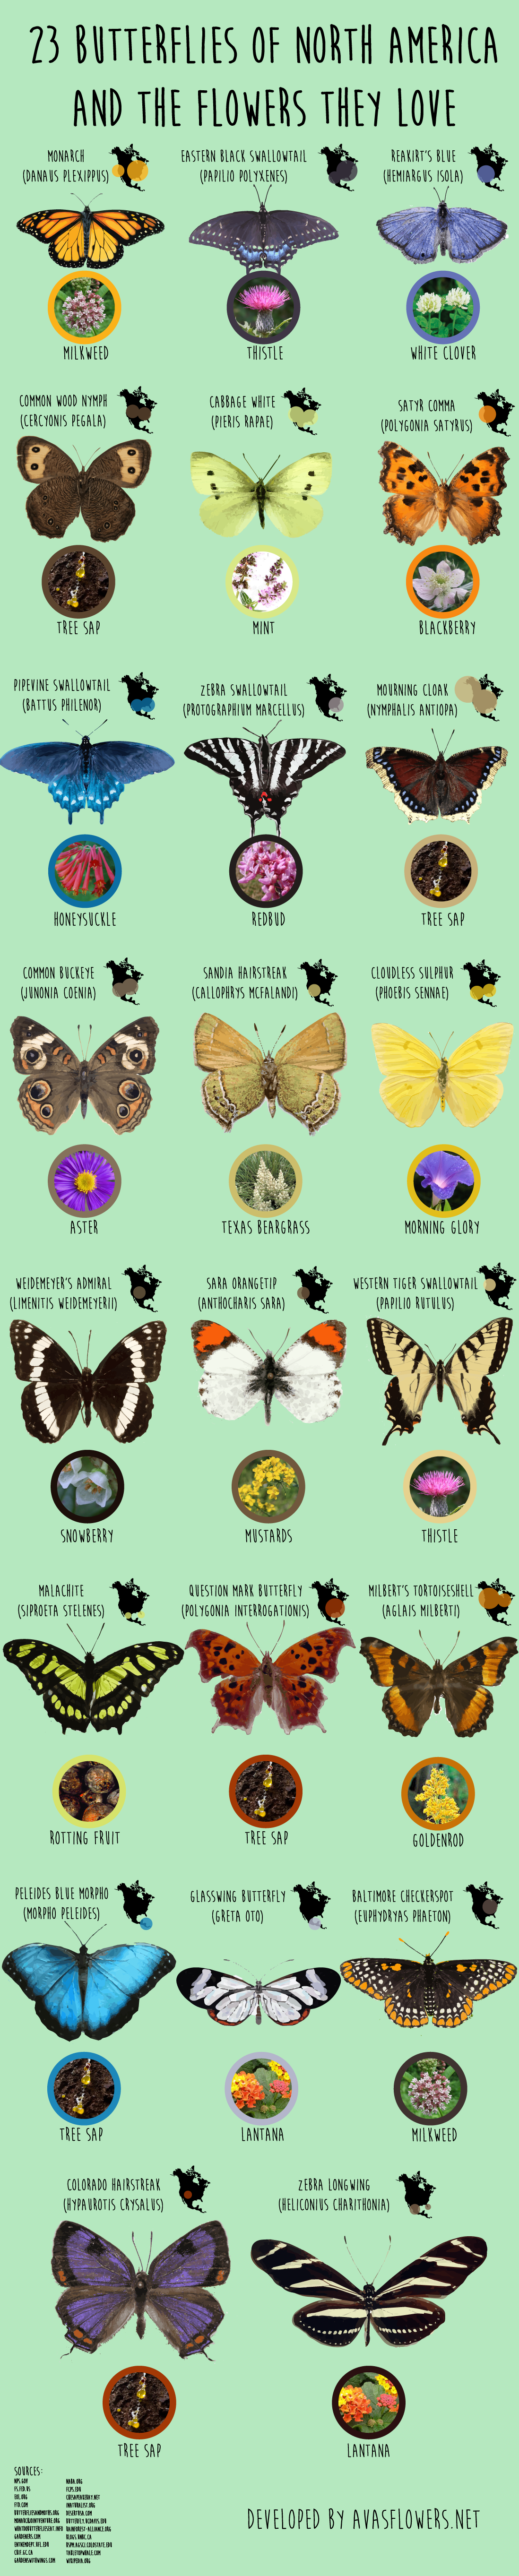 23 Butterflies of North America And the Flowers They Love